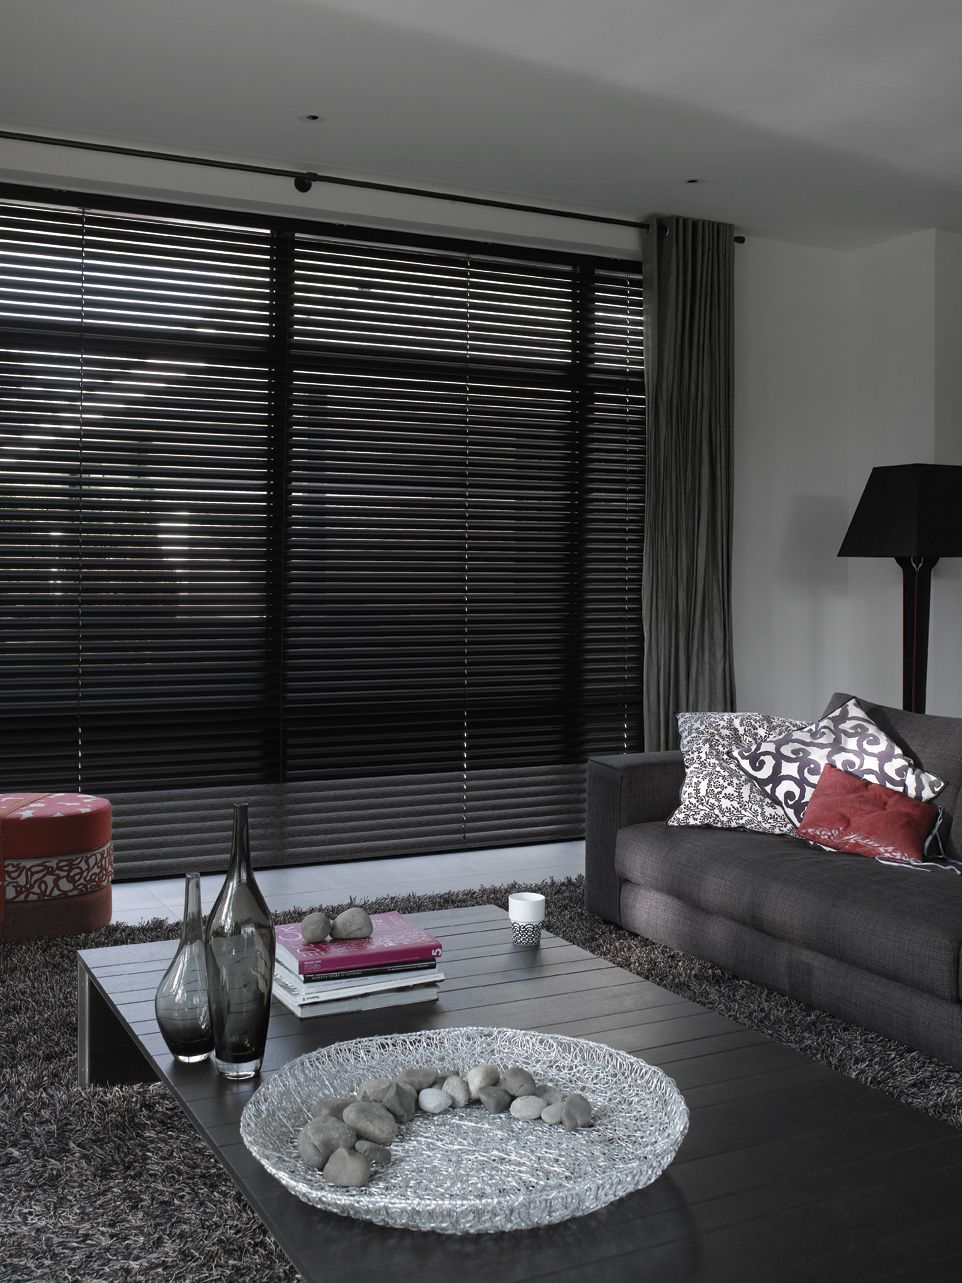 Black Venetian Blinds Very Stylish And Contemporary Curtains With Blinds Blinds Venetian Blinds Living Room